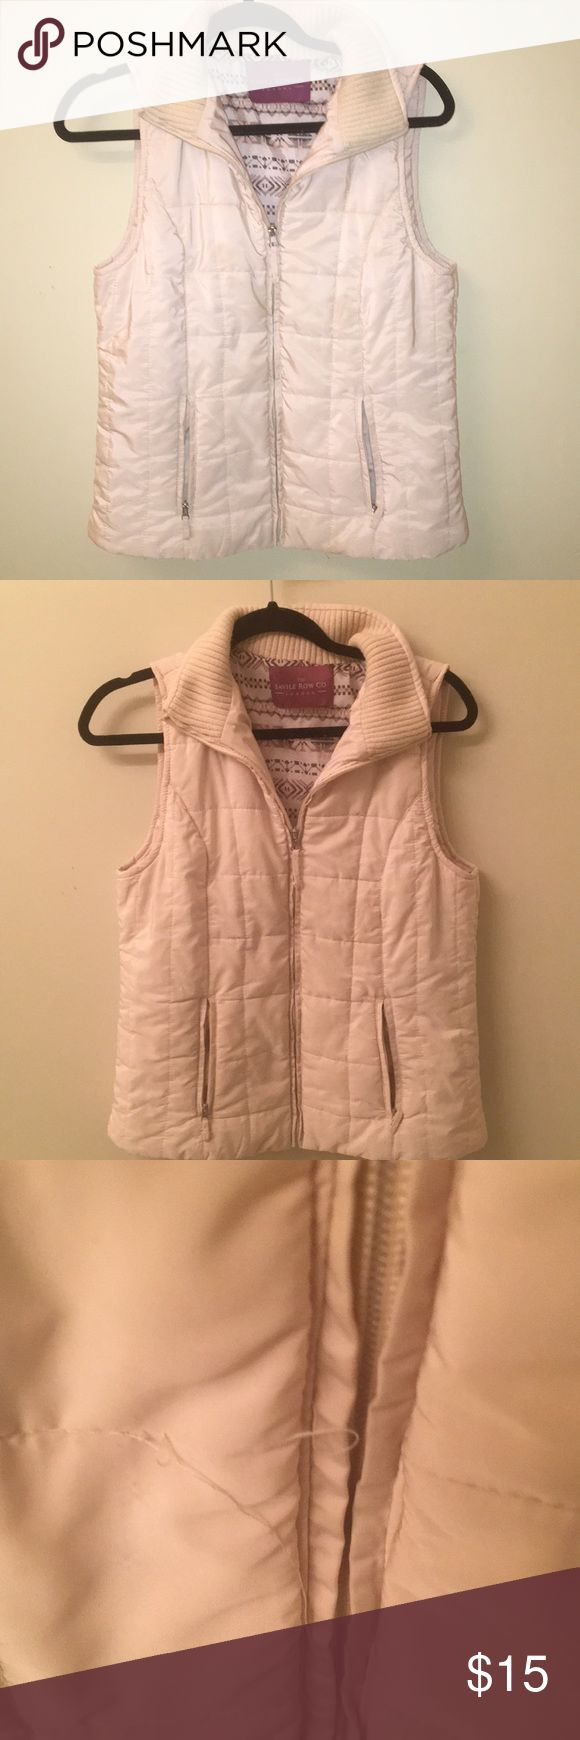 Cream Vest Cream Vest. Used and blemished pictured. No size listed but could fit a small to medium. Savile Row Co. Jackets & Coats Vests